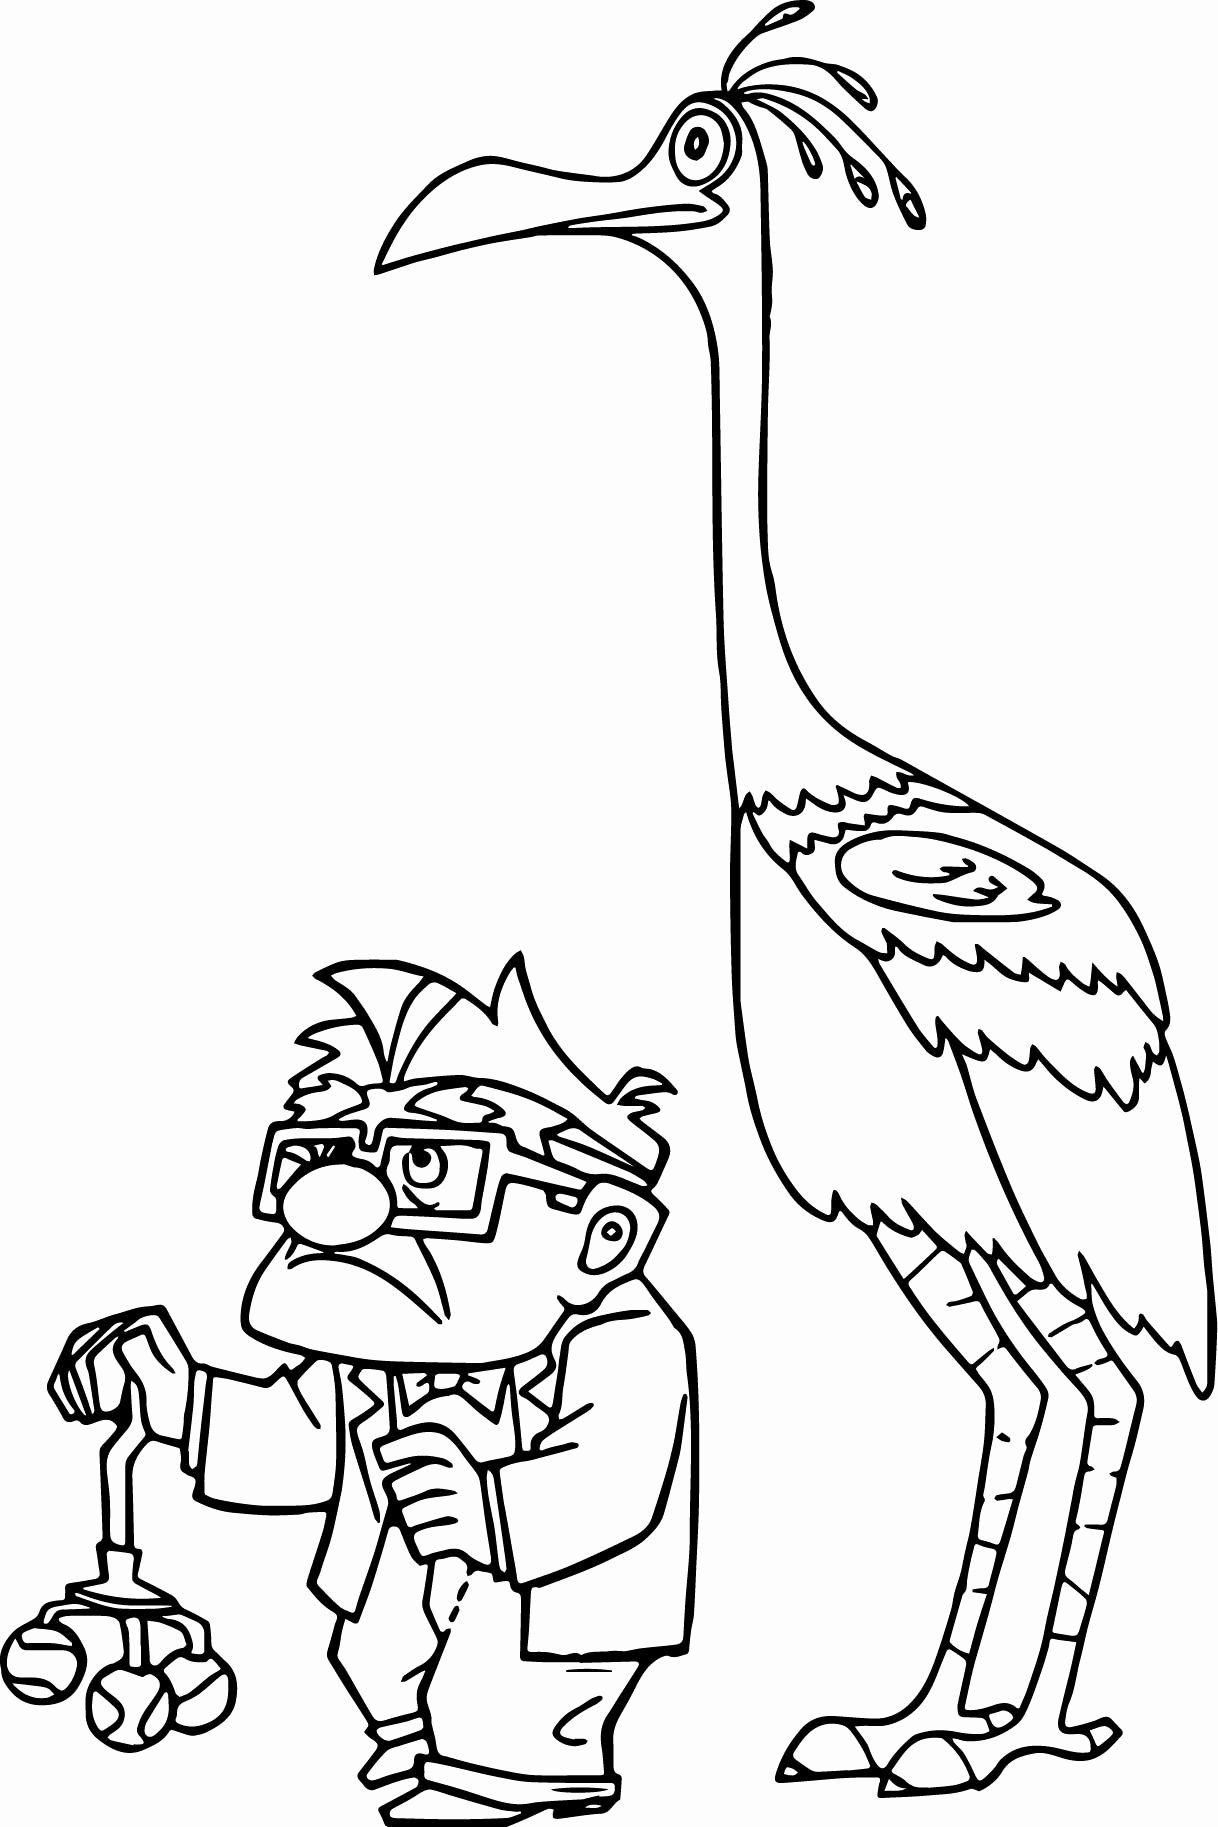 Disney Pixar Coloring Pages Awesome Kevin 11 Coloring Pages Coloring Coloring Pages Bee Coloring Pages House Colouring Pages Disney Coloring Pages